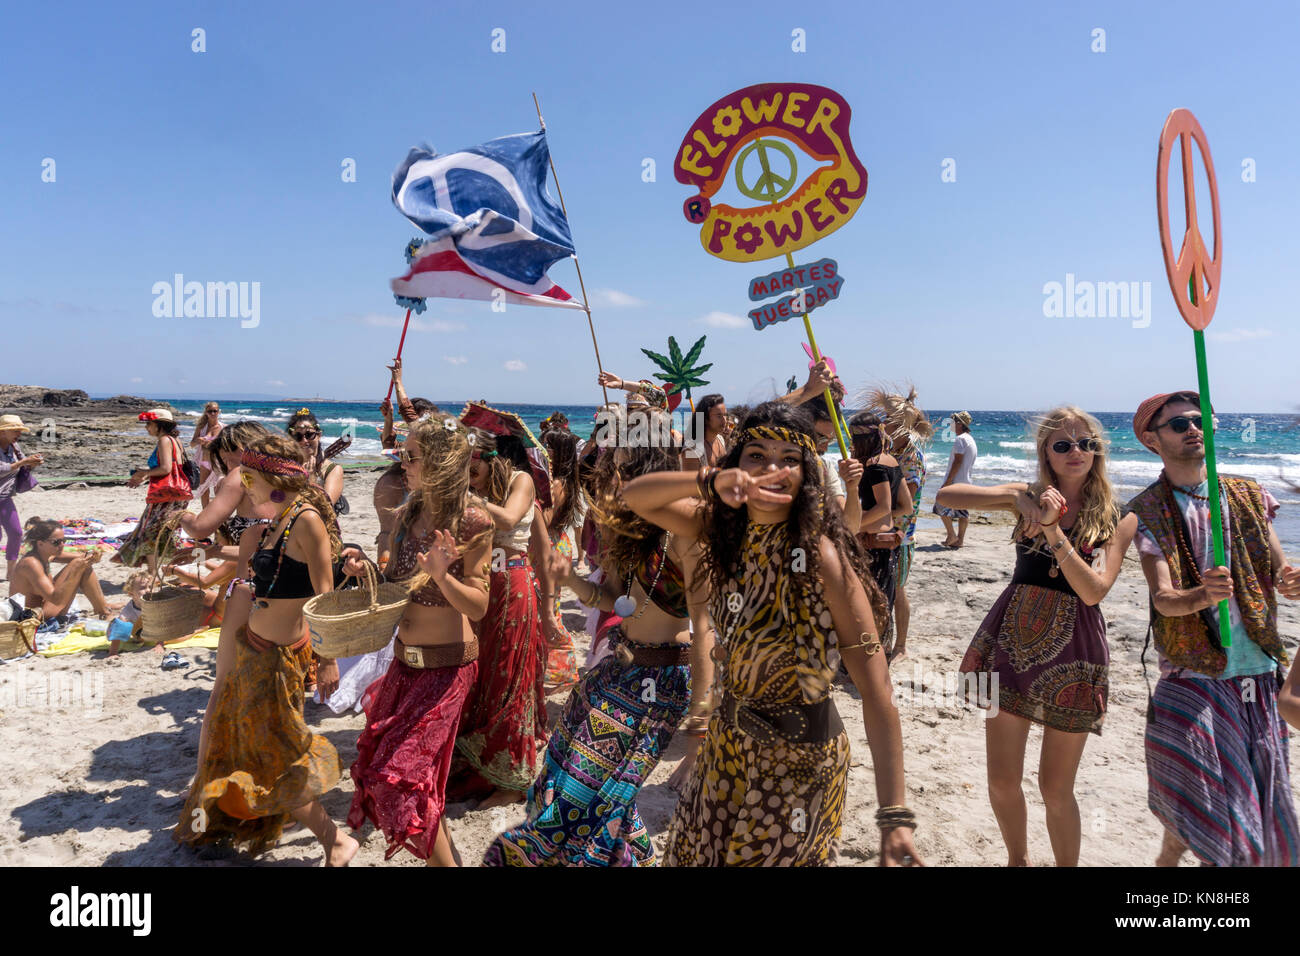 Promotion Group for Flower Power Party at  Pacha Club, Playa ses Salines,  Ibiza,  Spain - Stock Image